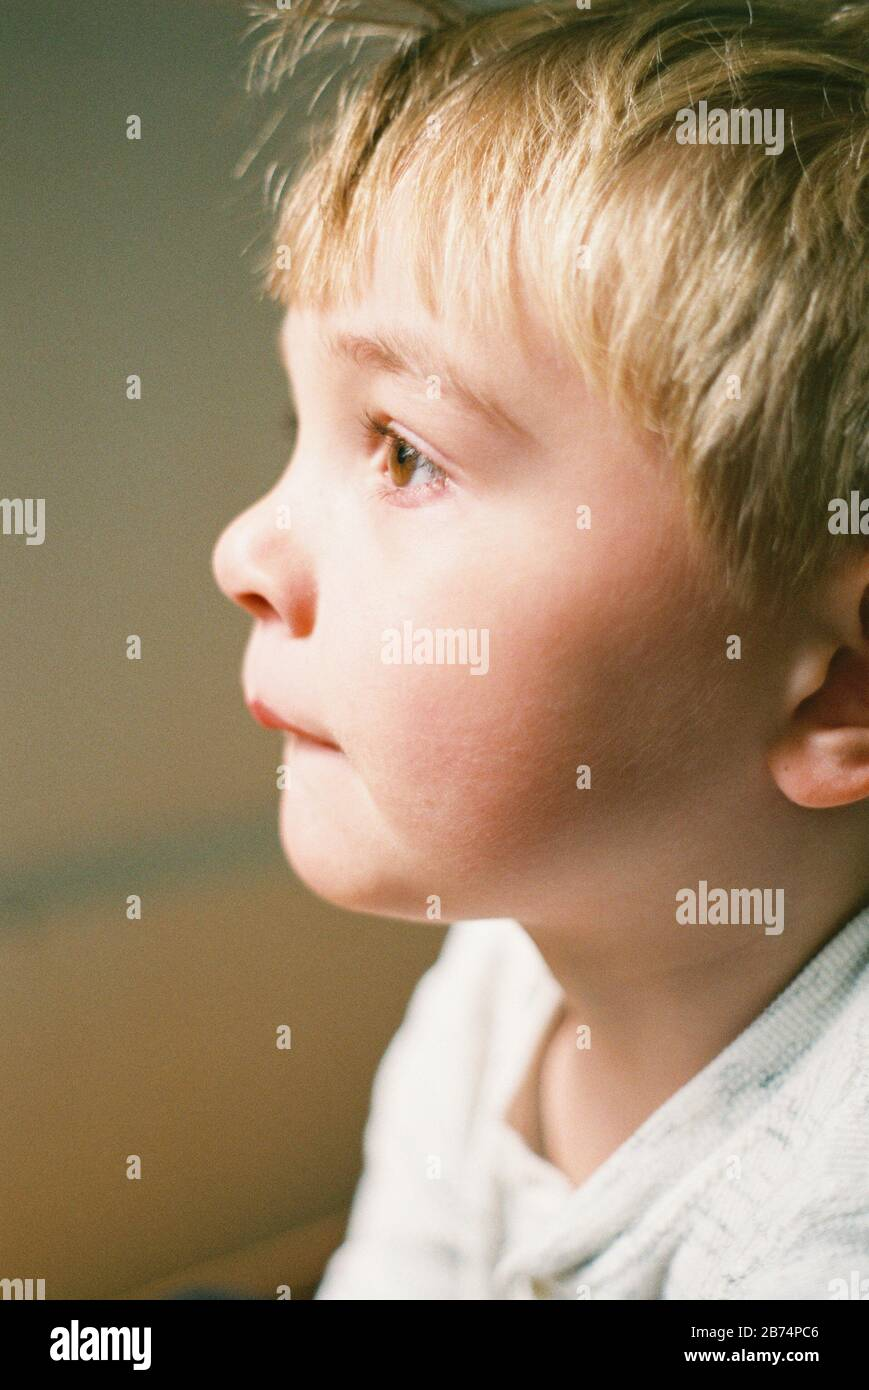 Little boy looking out the window, captured on film. Stock Photo